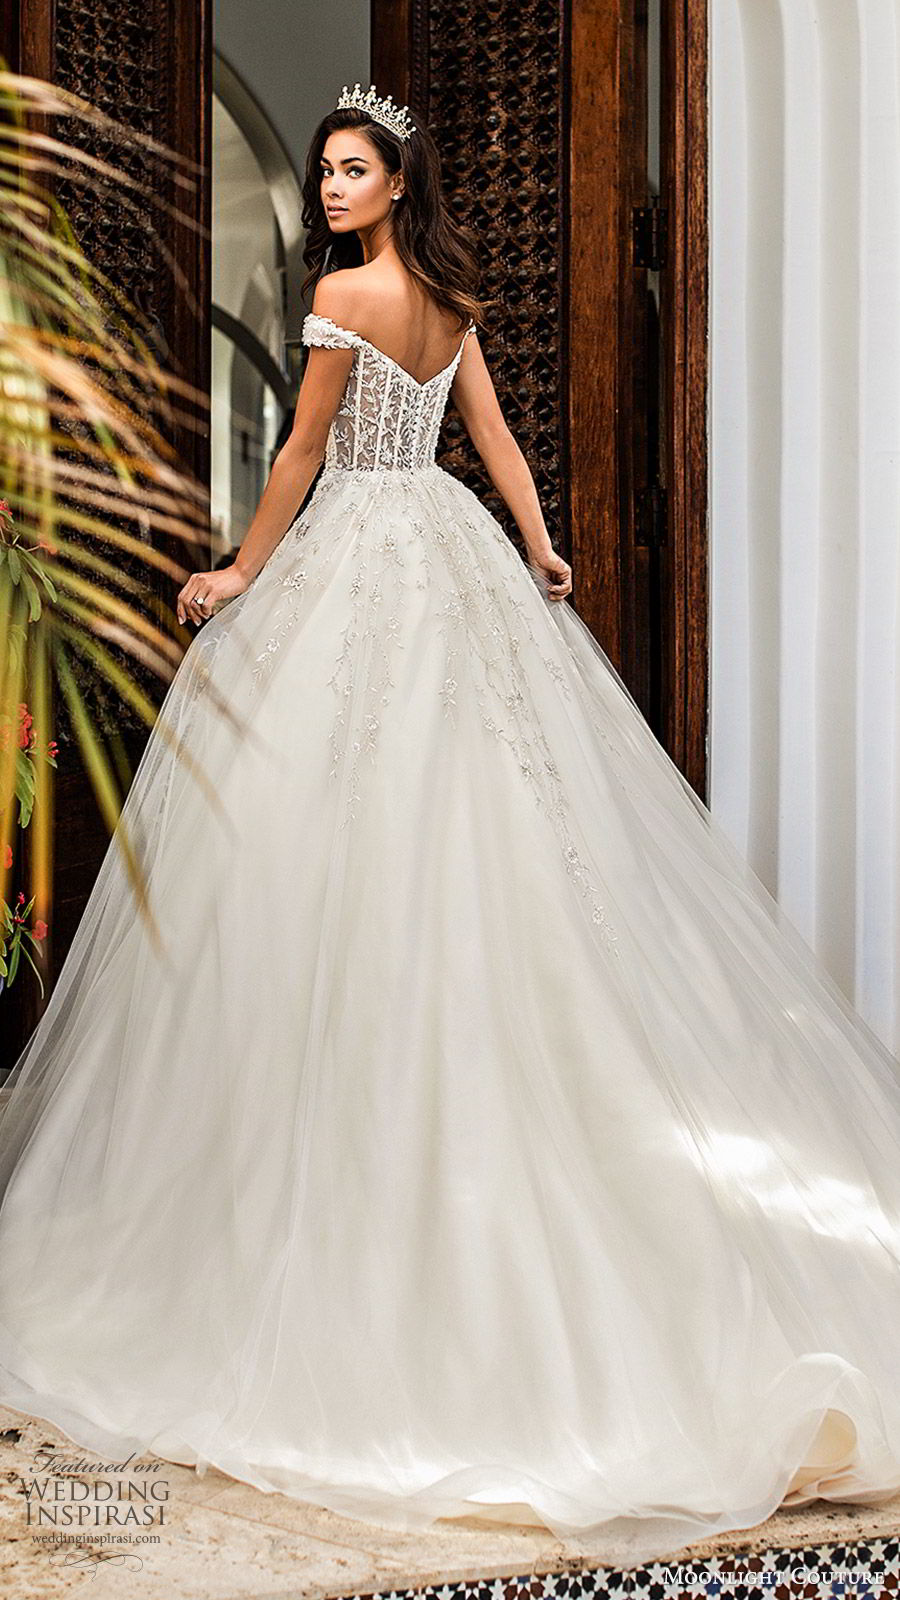 moonlight couture fall 2019 bridal off shoulder sweetheart embellished bodice a line ball gown wedding dress (7) princess romantic glitzy sheer back chapel train bv